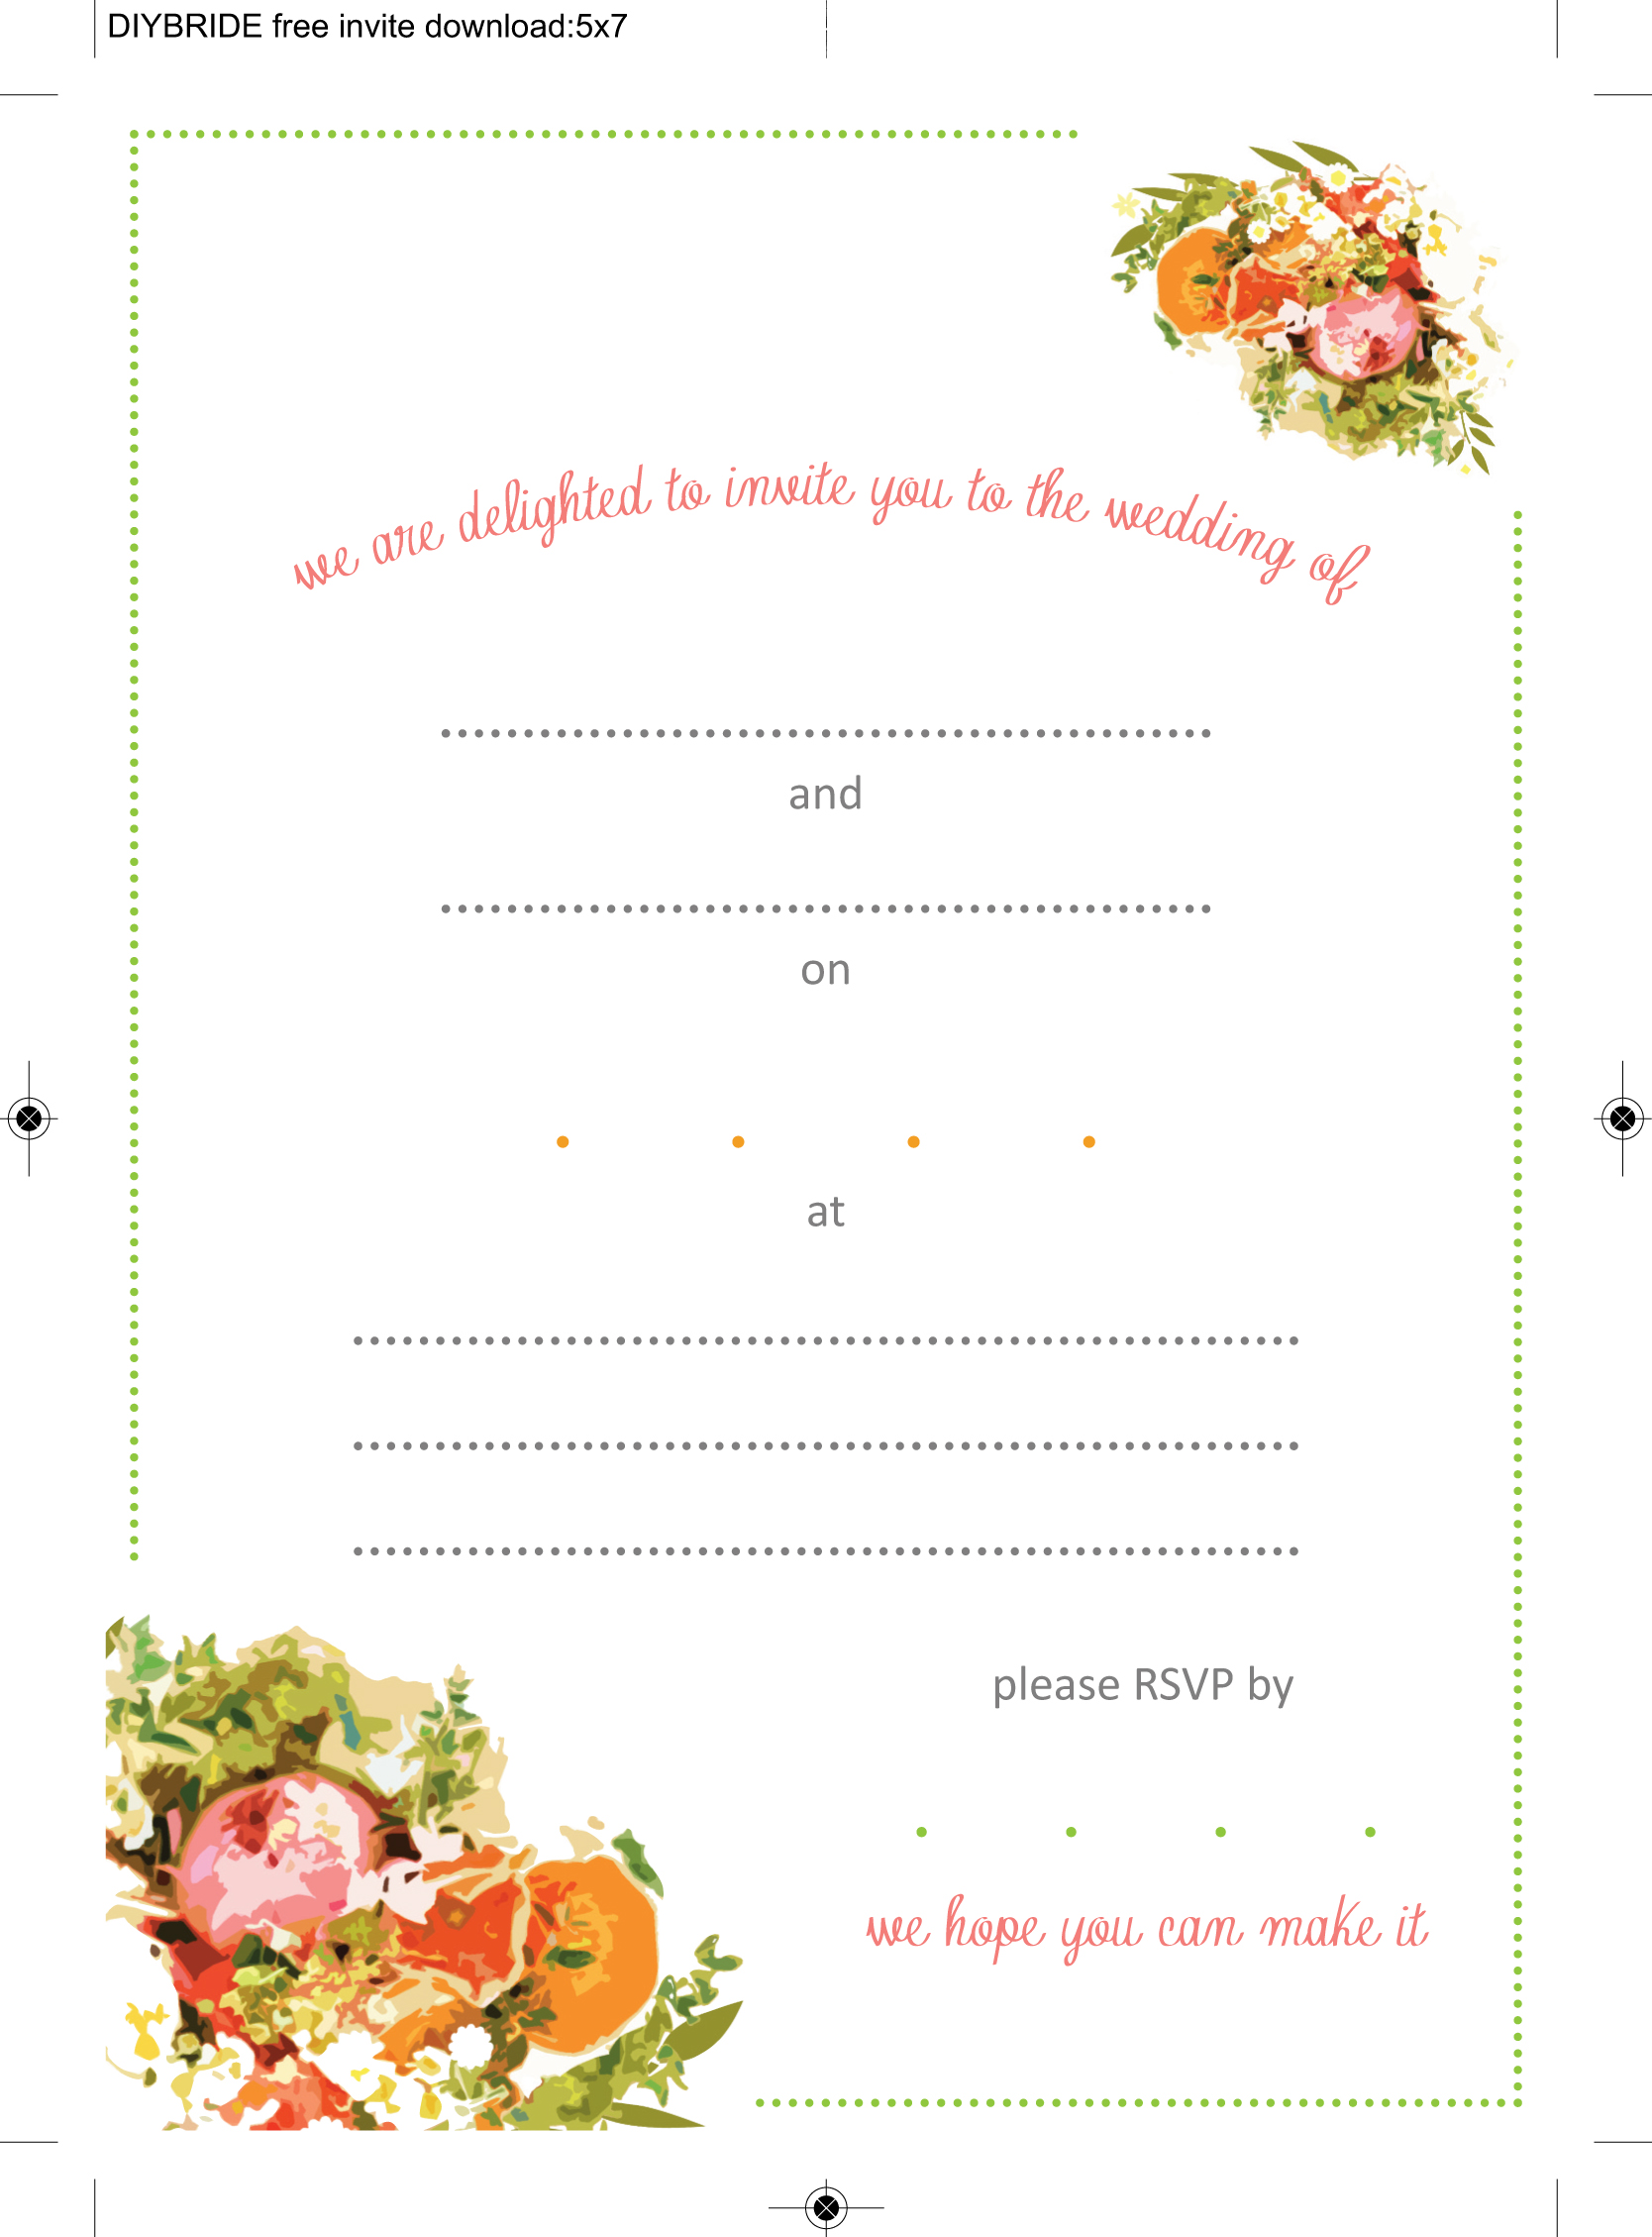 Wedding Invitation Templates That Are Cute And Easy To Make - Birthday invitation software free download